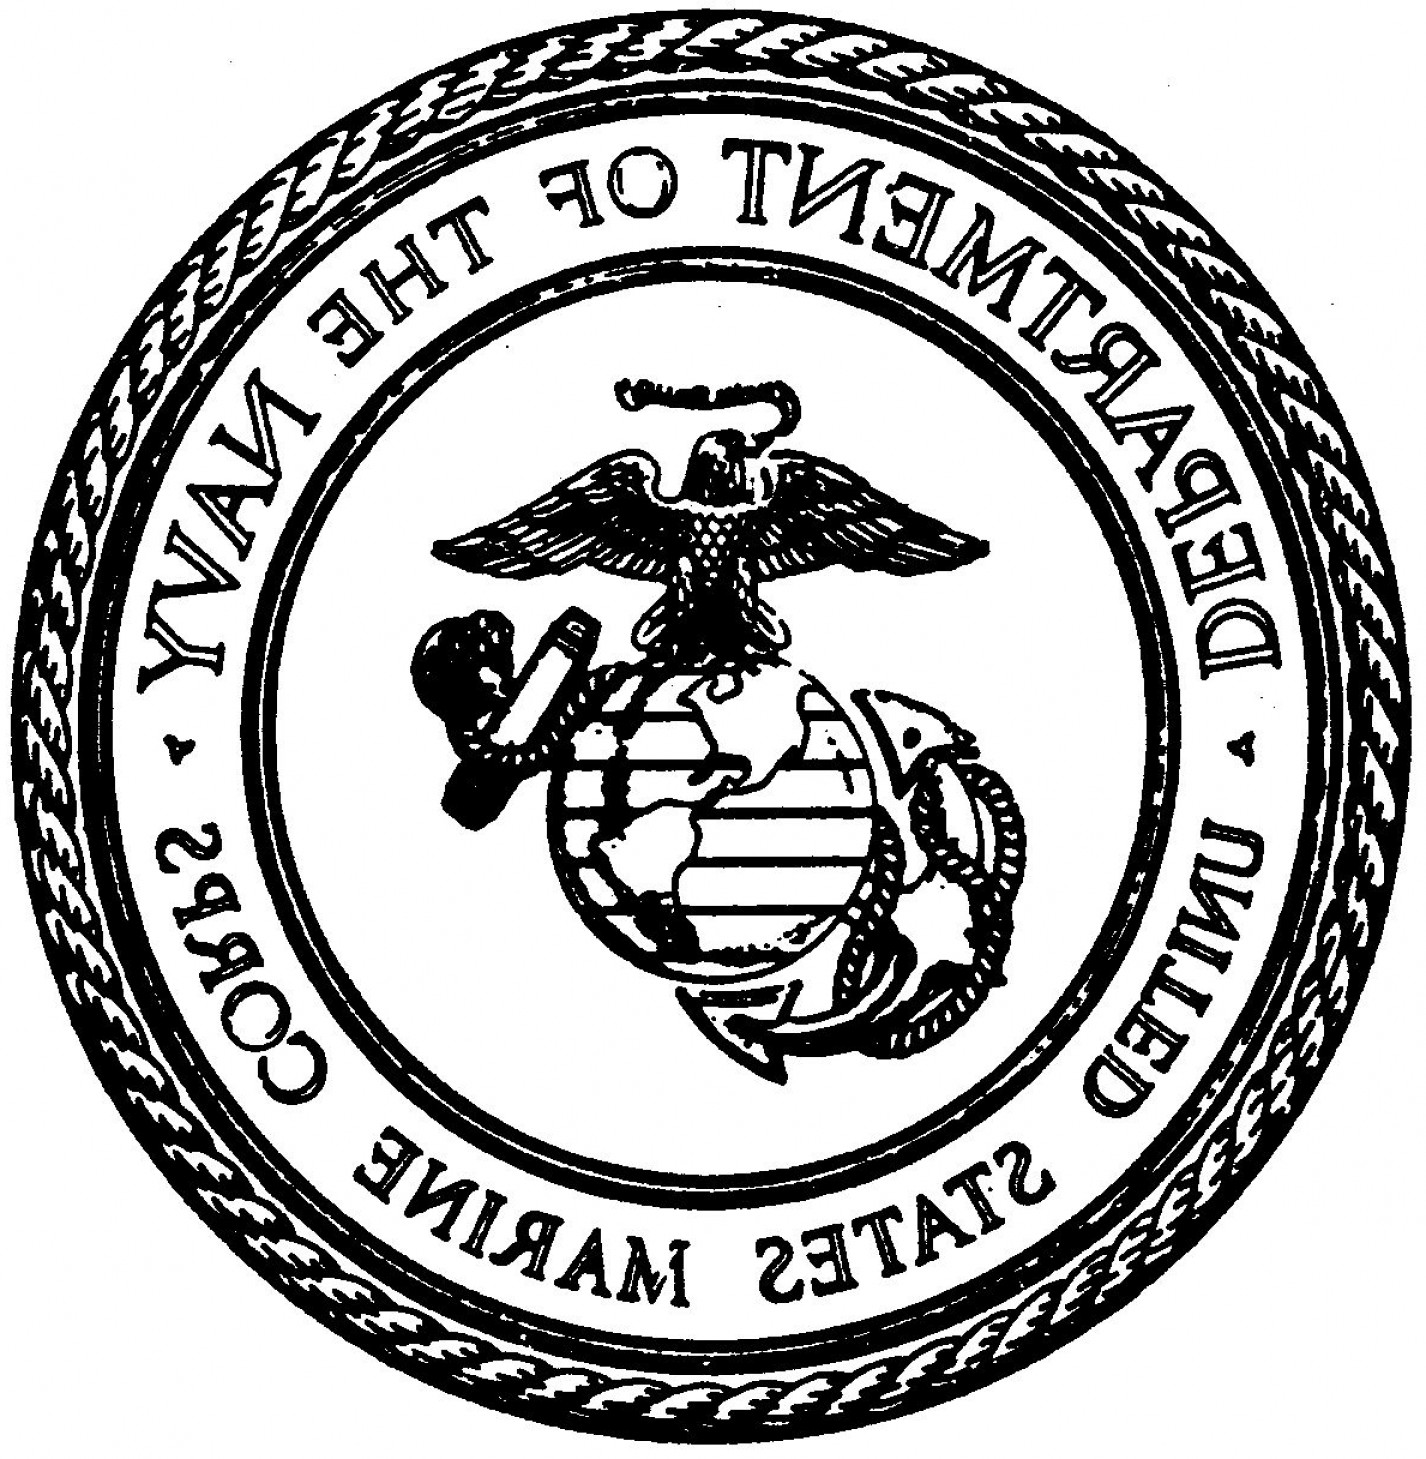 usmc emblem drawing at getdrawings com free for personal use usmc rh getdrawings com Official Marine Corps Emblem Official Marine Corps Emblem